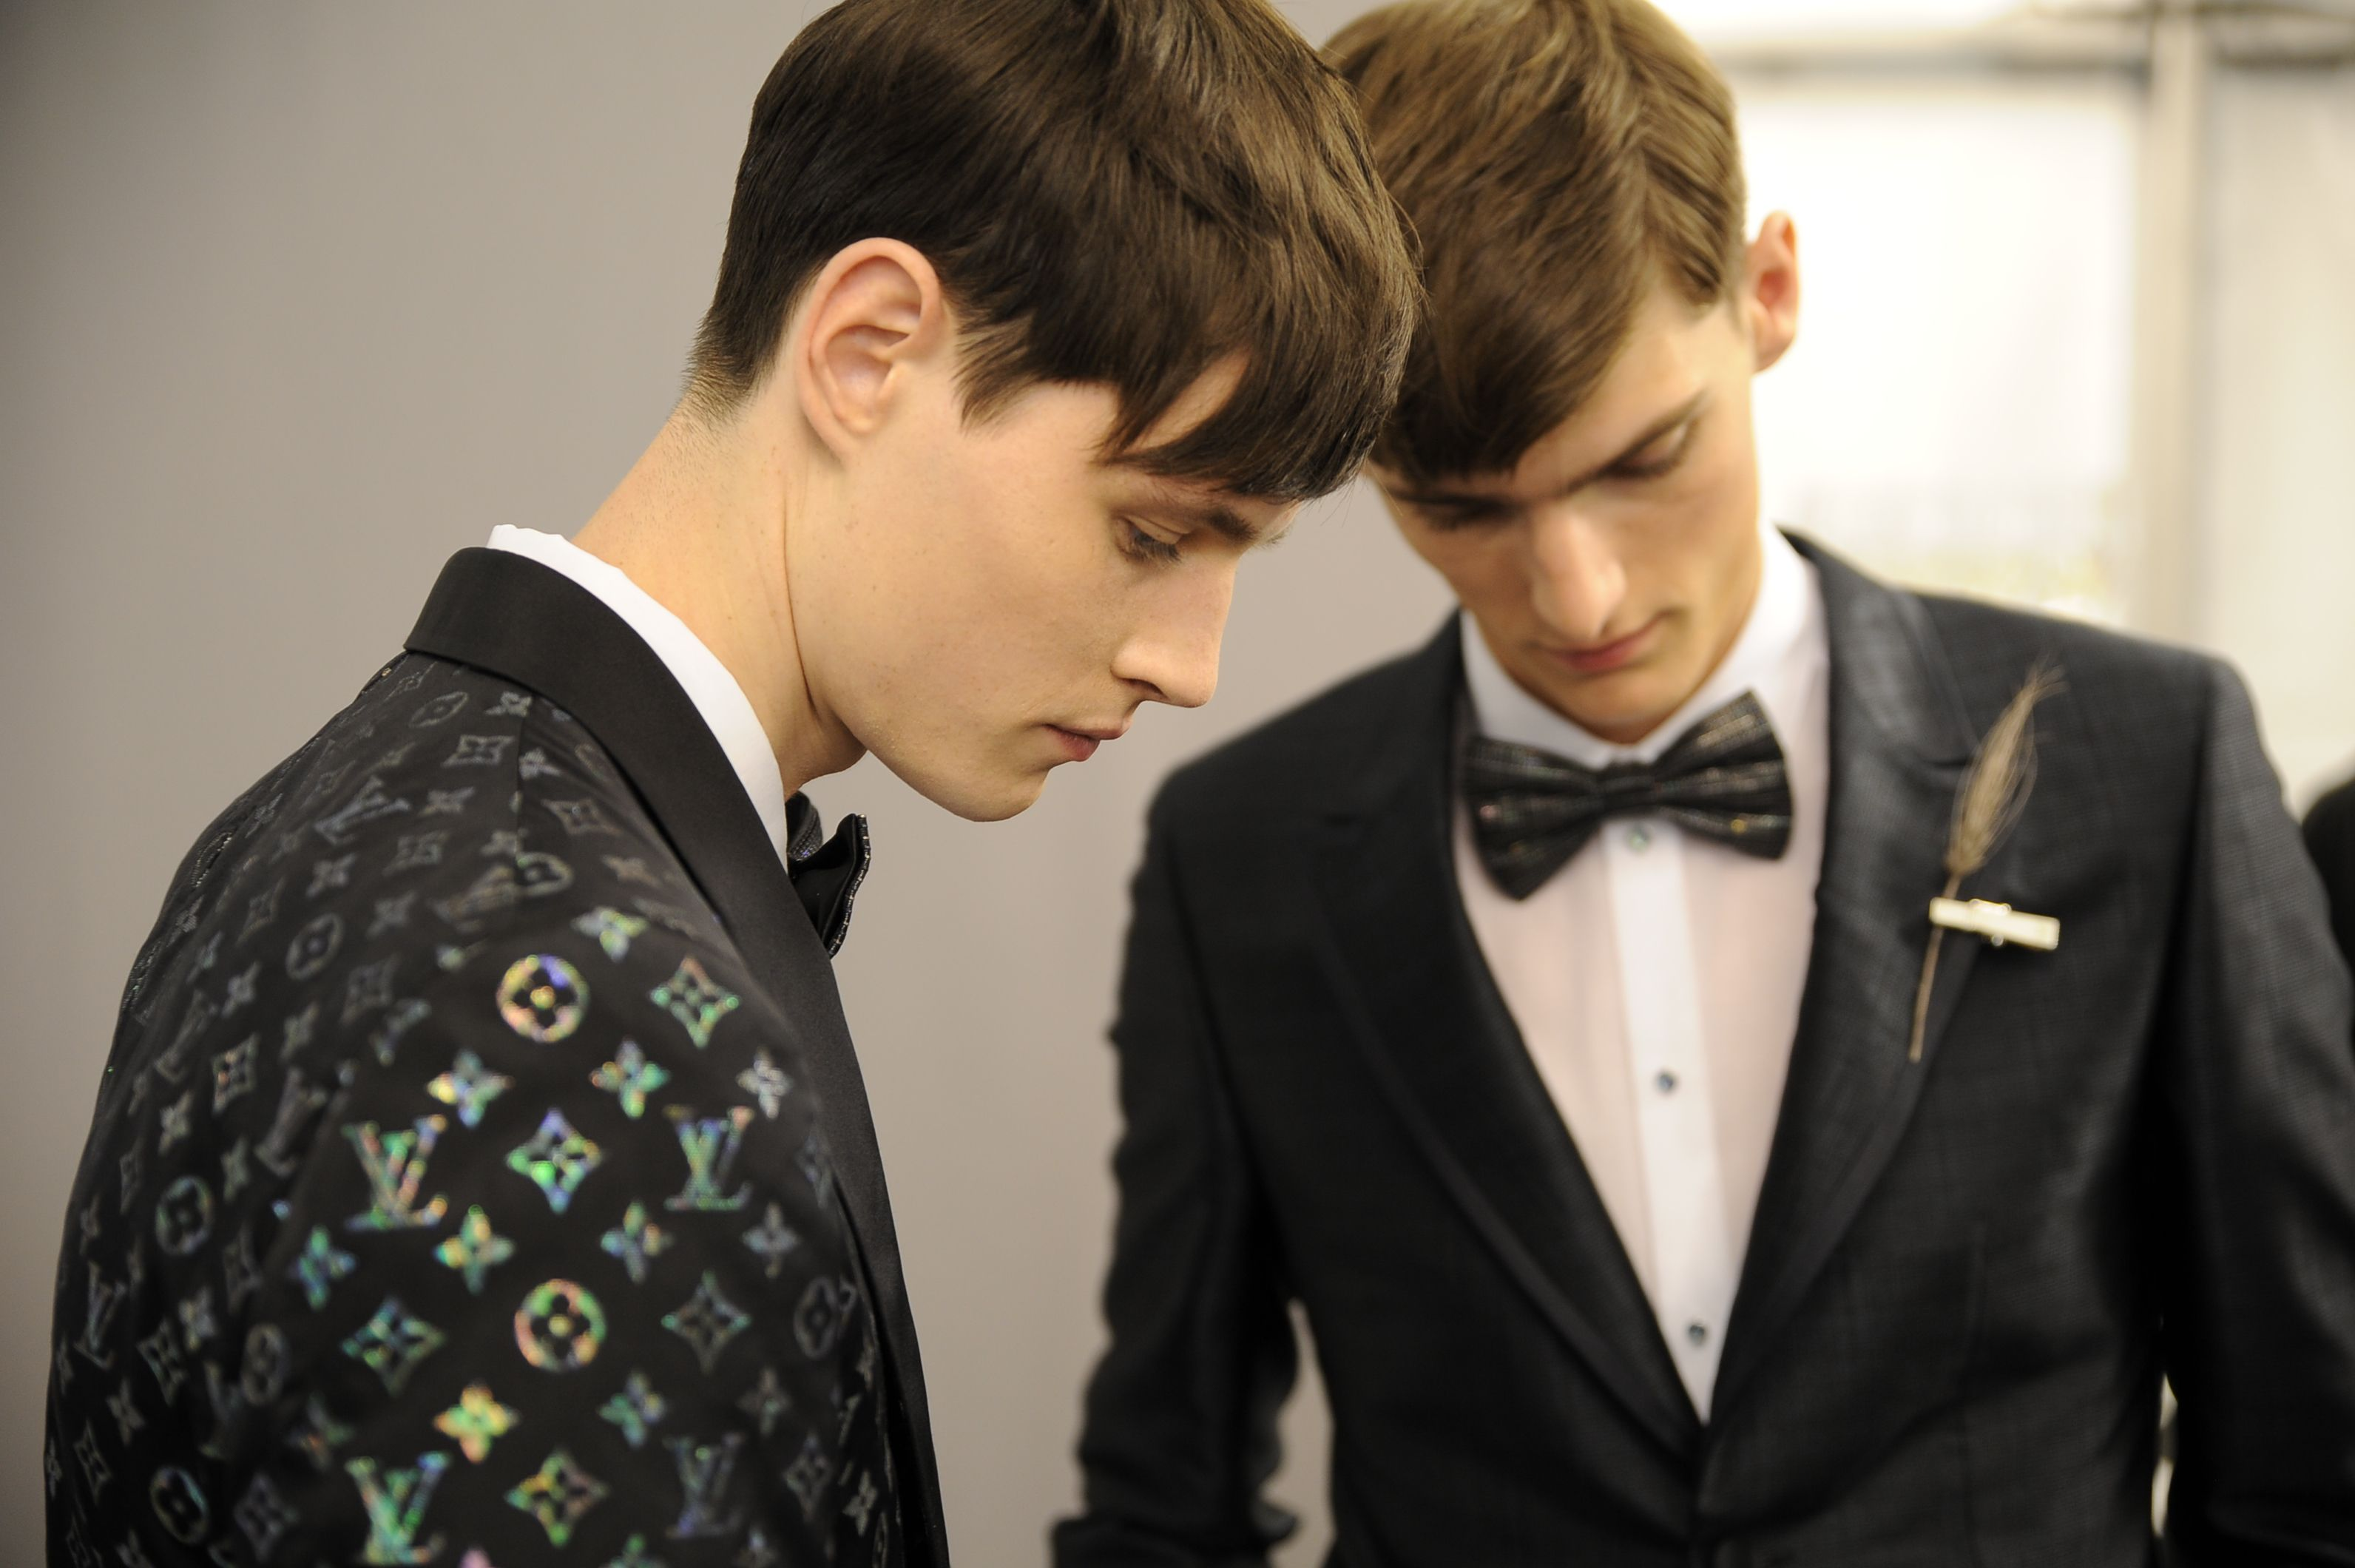 Backstage at the Louis Vuitton Men's Spring/Summer 2014 Fashion Show. ©Louis Vuitton / Matthieu Dortomb